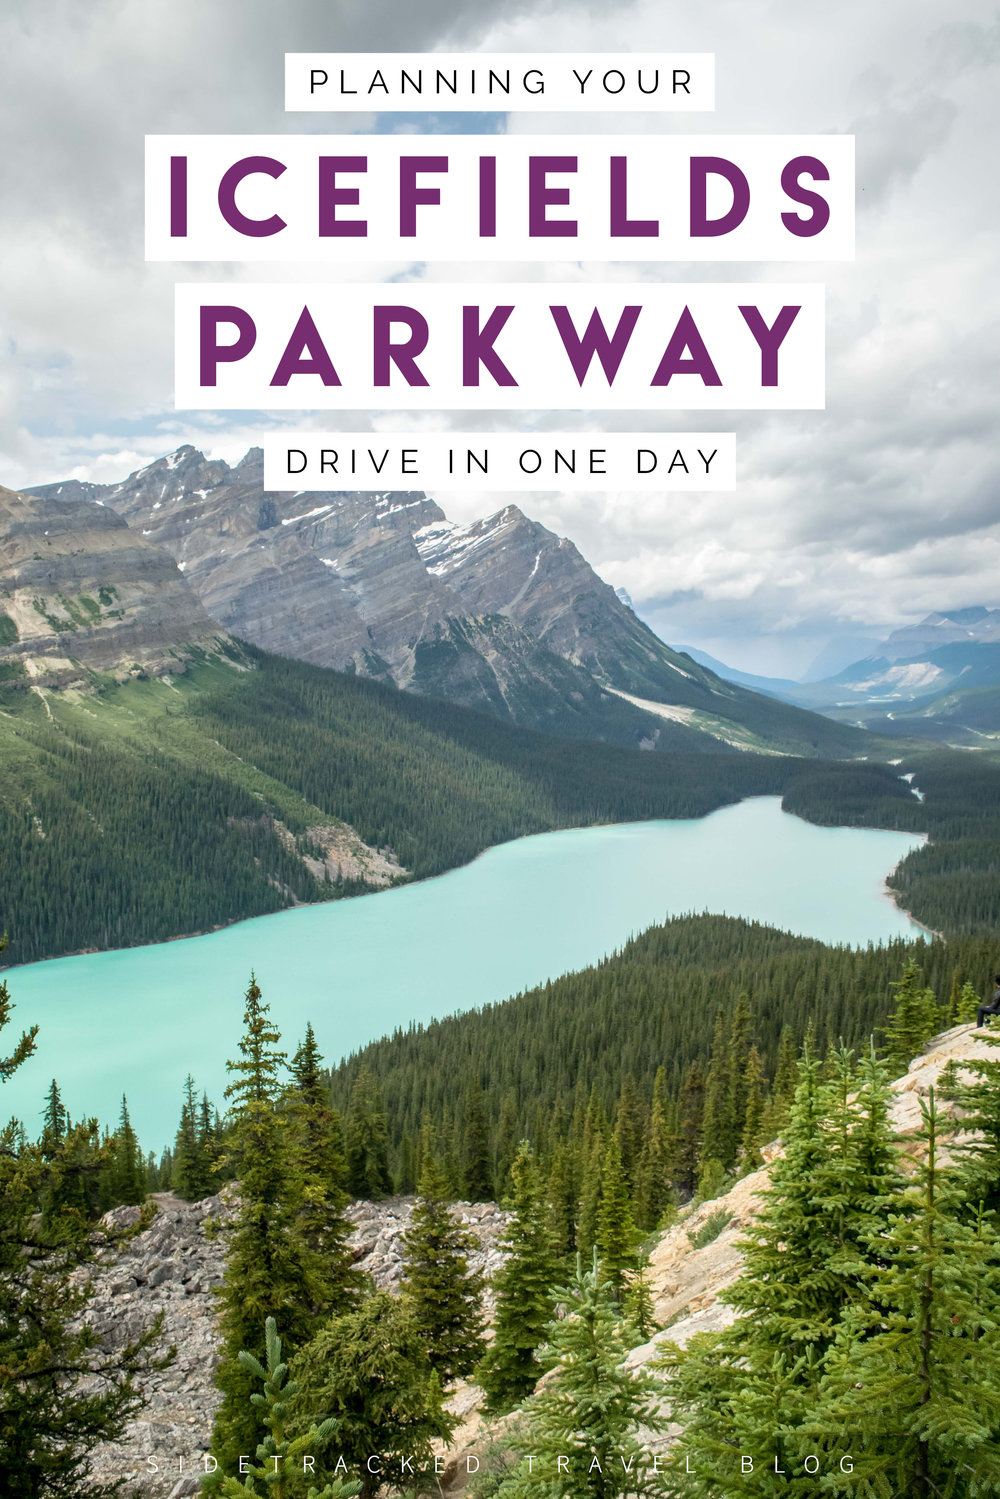 The Icefields Parkway, a 232 km driving tour through some of the most impressive landscapes in the Canadian Rocky Mountains, is a stunning introduction for those planning their first trip to this region of the world. To give you an idea of the main stops along the way, here is a handy guide on how you can spend one day touring the Icefields Parkway.